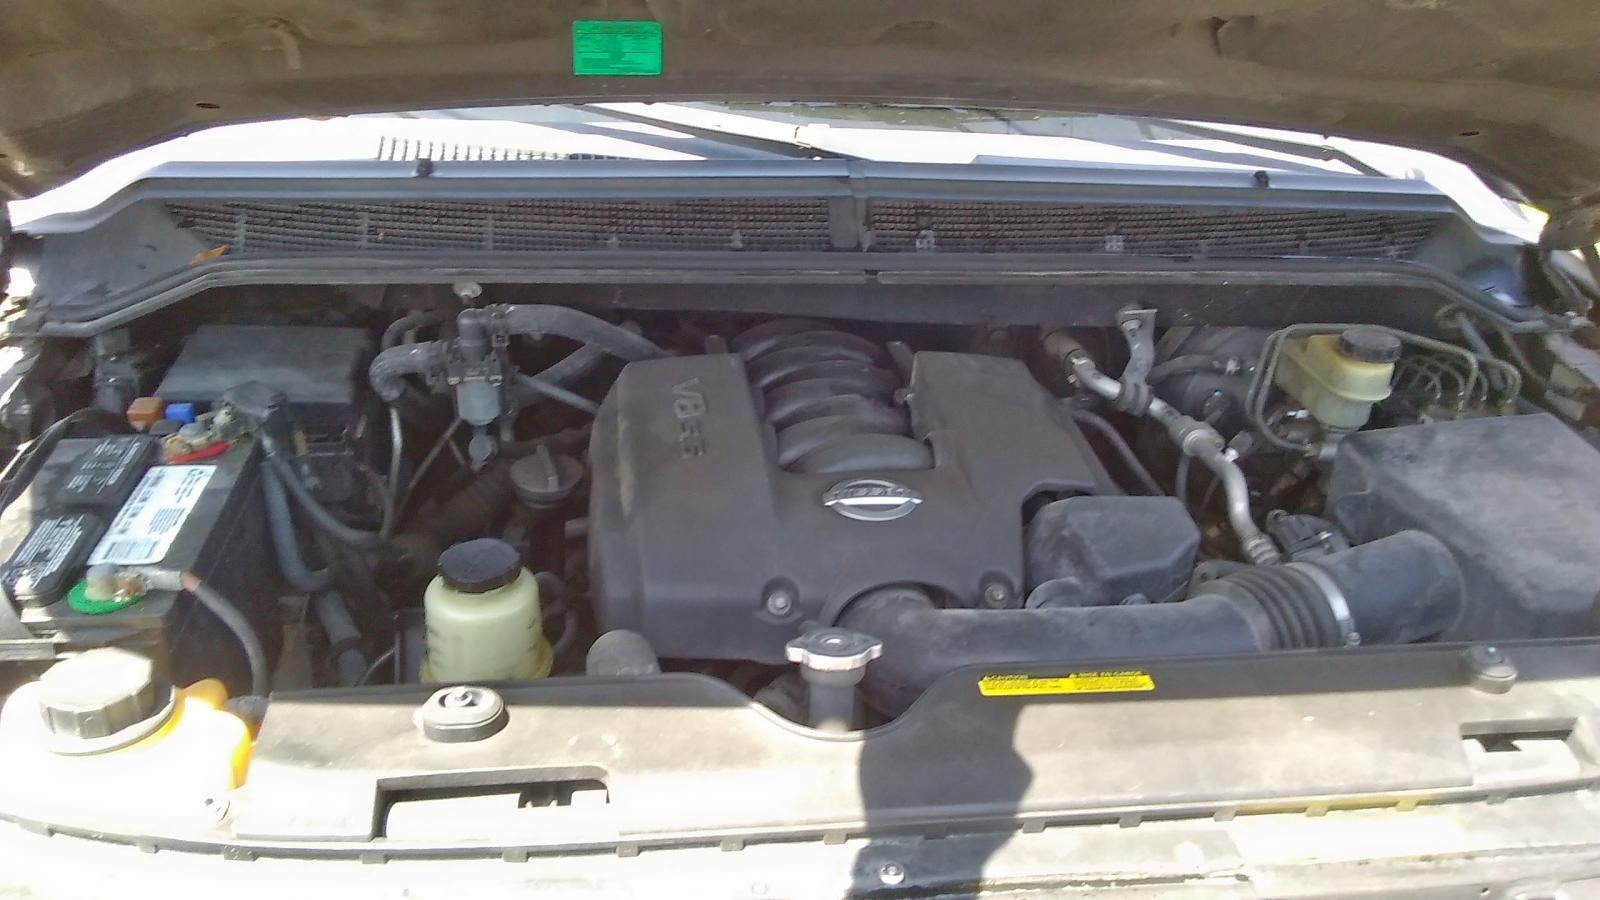 5N1AA08A54N700907 - 2004 Nissan Armada Se 5.6L front view